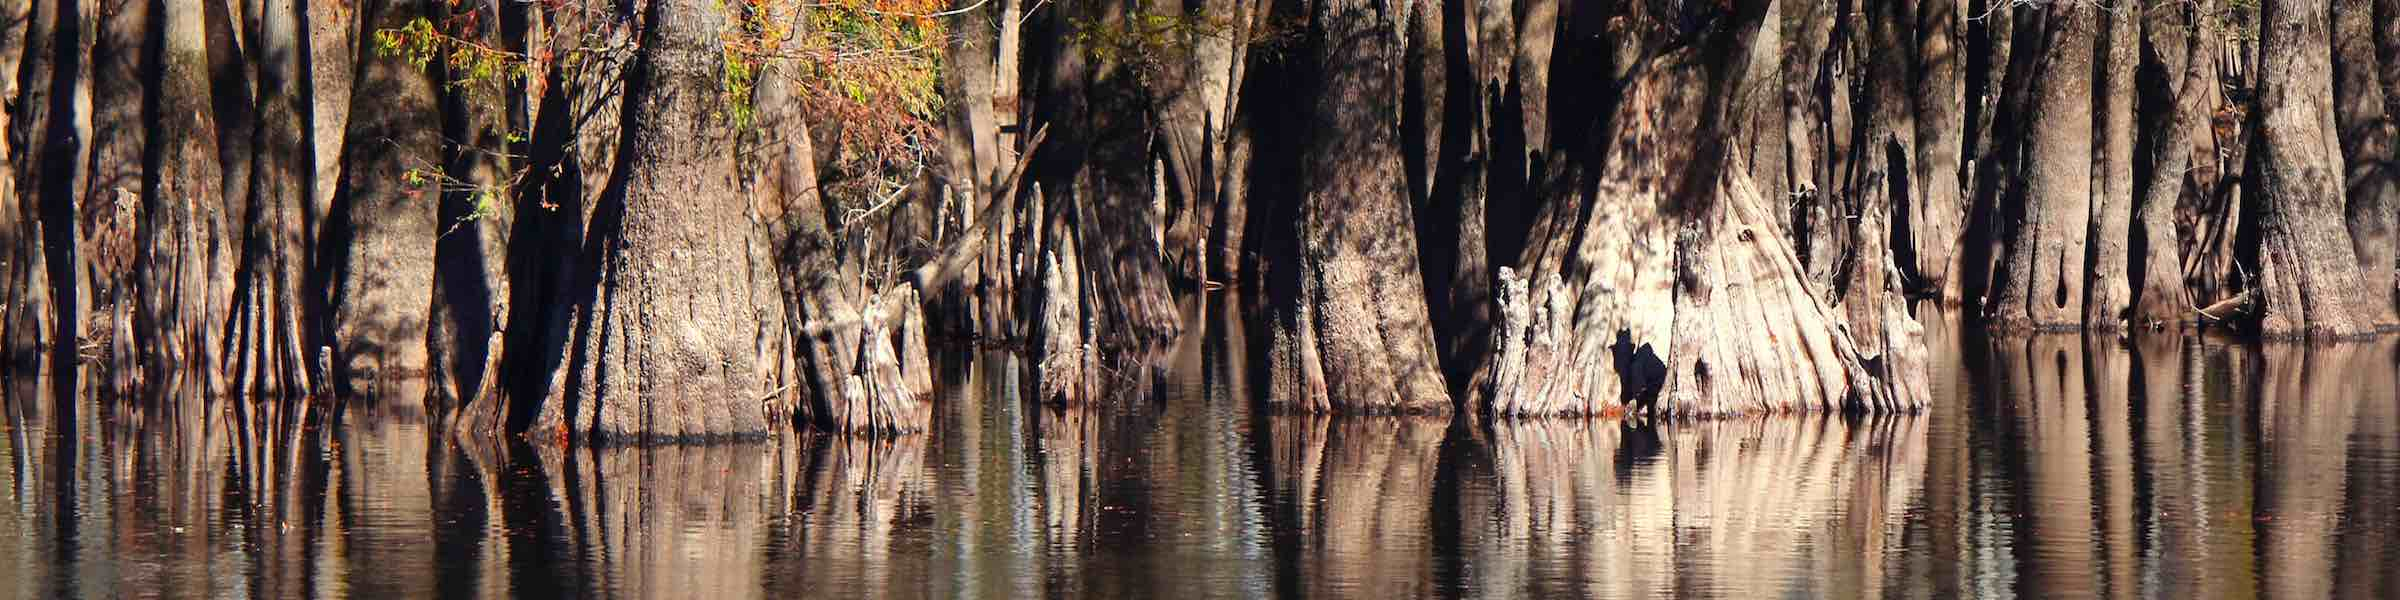 Cypress trees in the swamp.